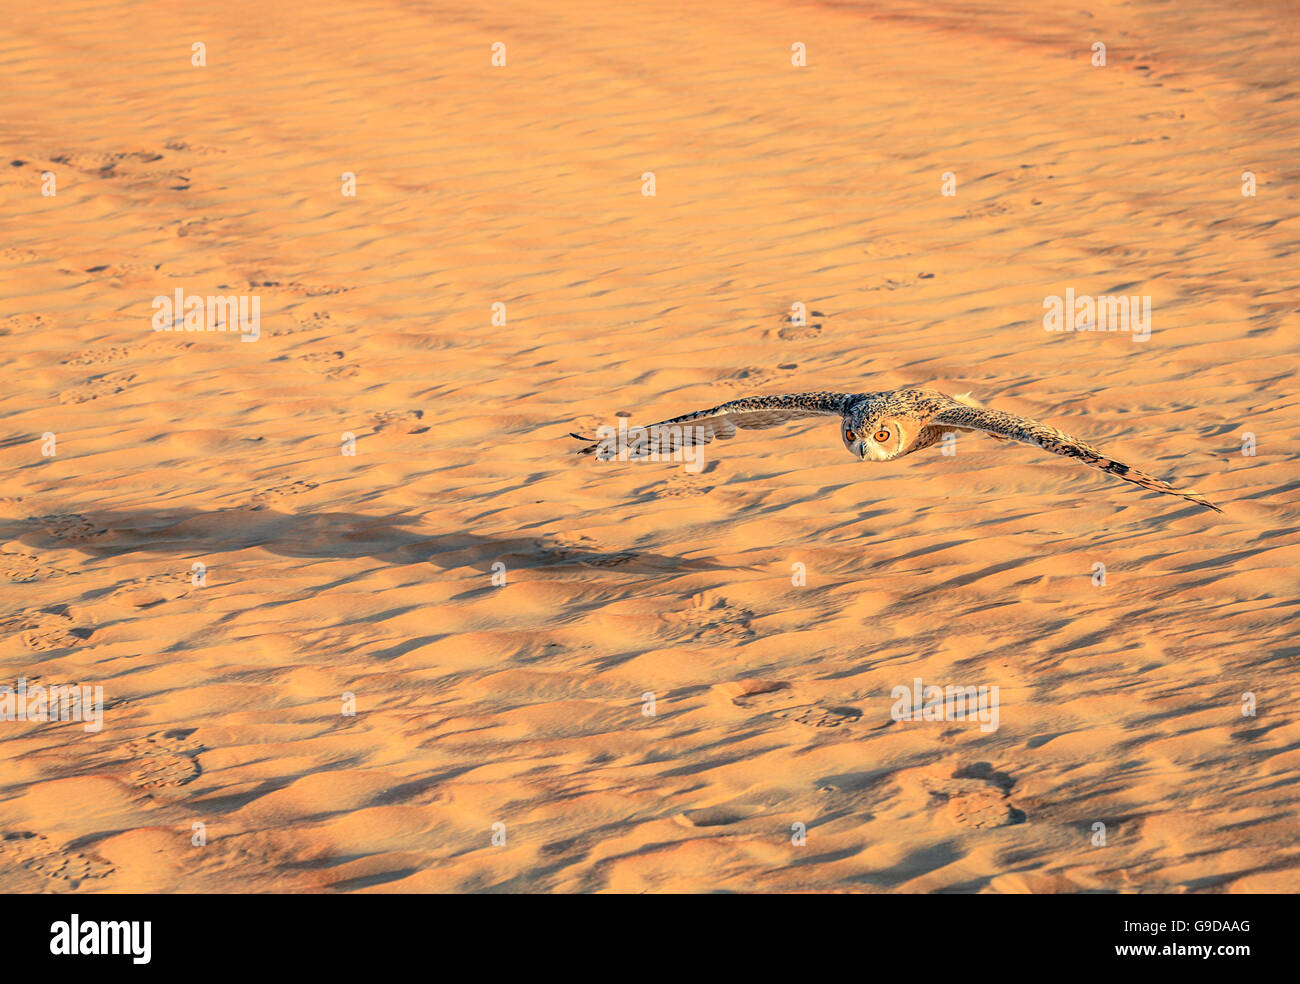 Desert Eagle Owl flying over dunes of Dubai Desert Conservation Reserve, UAE - Stock Image